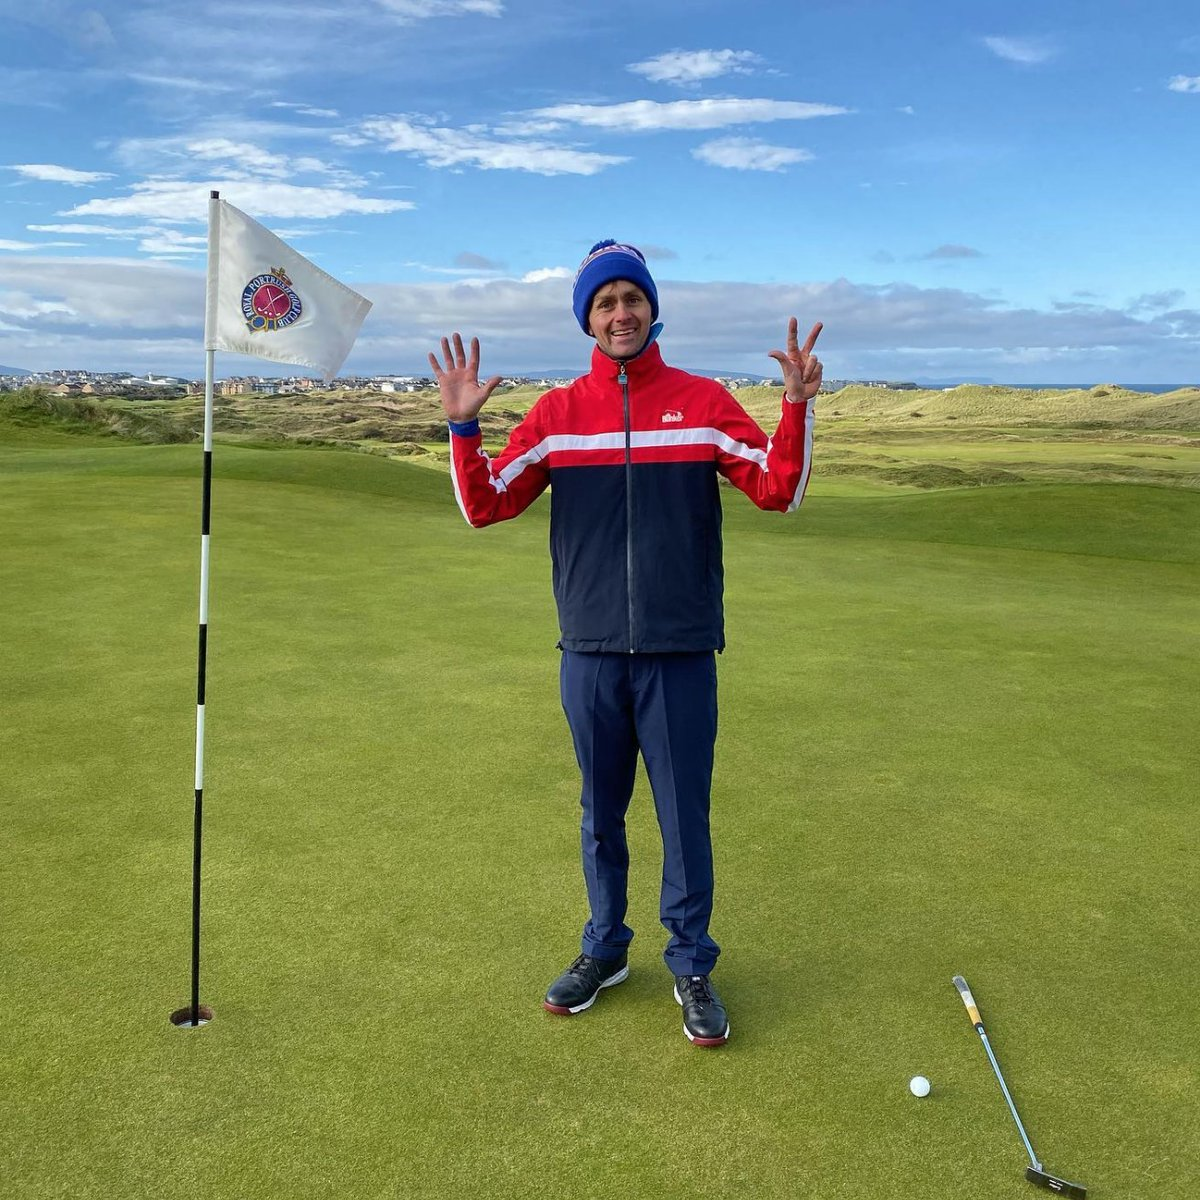 @LukeWillettGolf has now chalked up 8 @TheOpen courses – great welcome yesterday @royalportrush – & 385 miles cycling in 5 days. Incredible effort to raise funds for @GolfRootsHQ charity to change the lives of young people through golf. Back Luke now at bit.ly/2lFLQbS